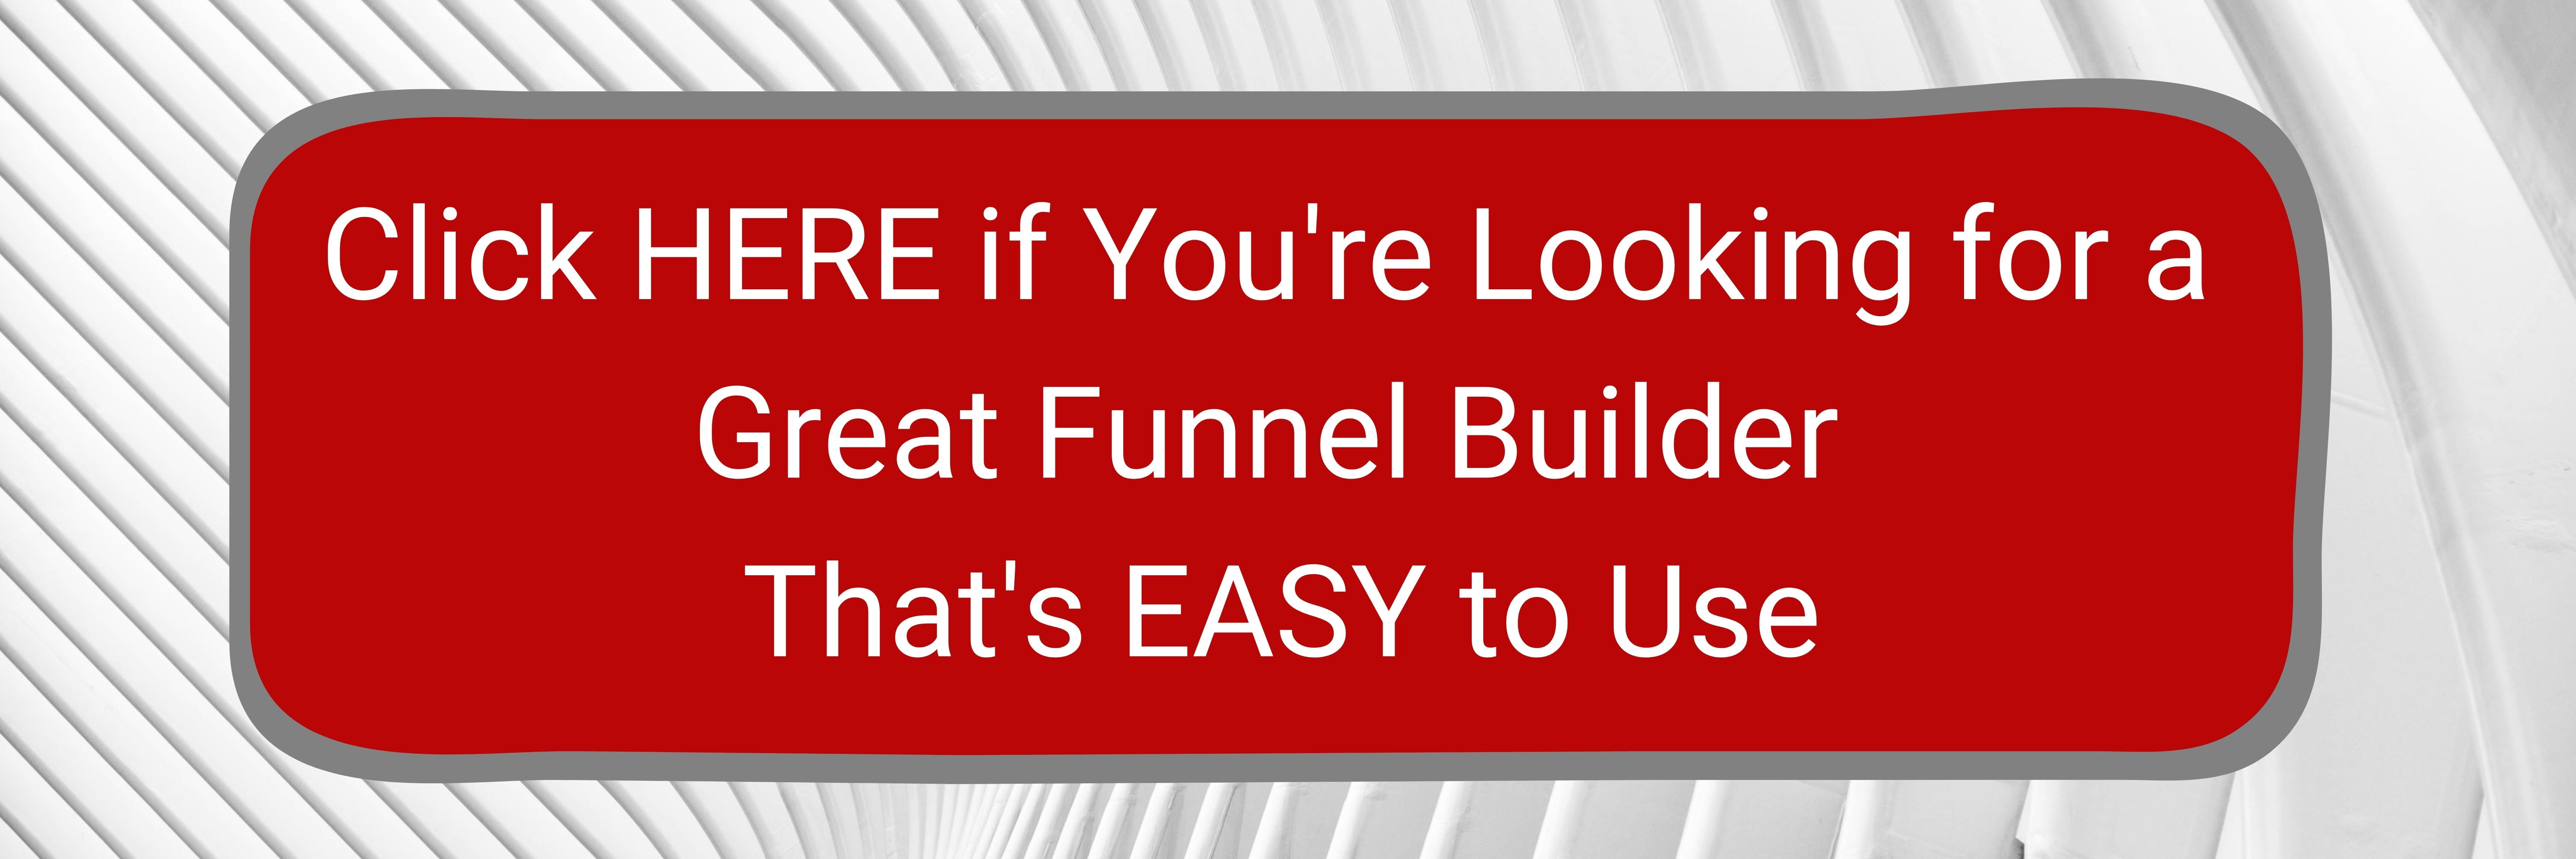 How To Verify Your Website Using Google Search Console - Funnel Builder Banner